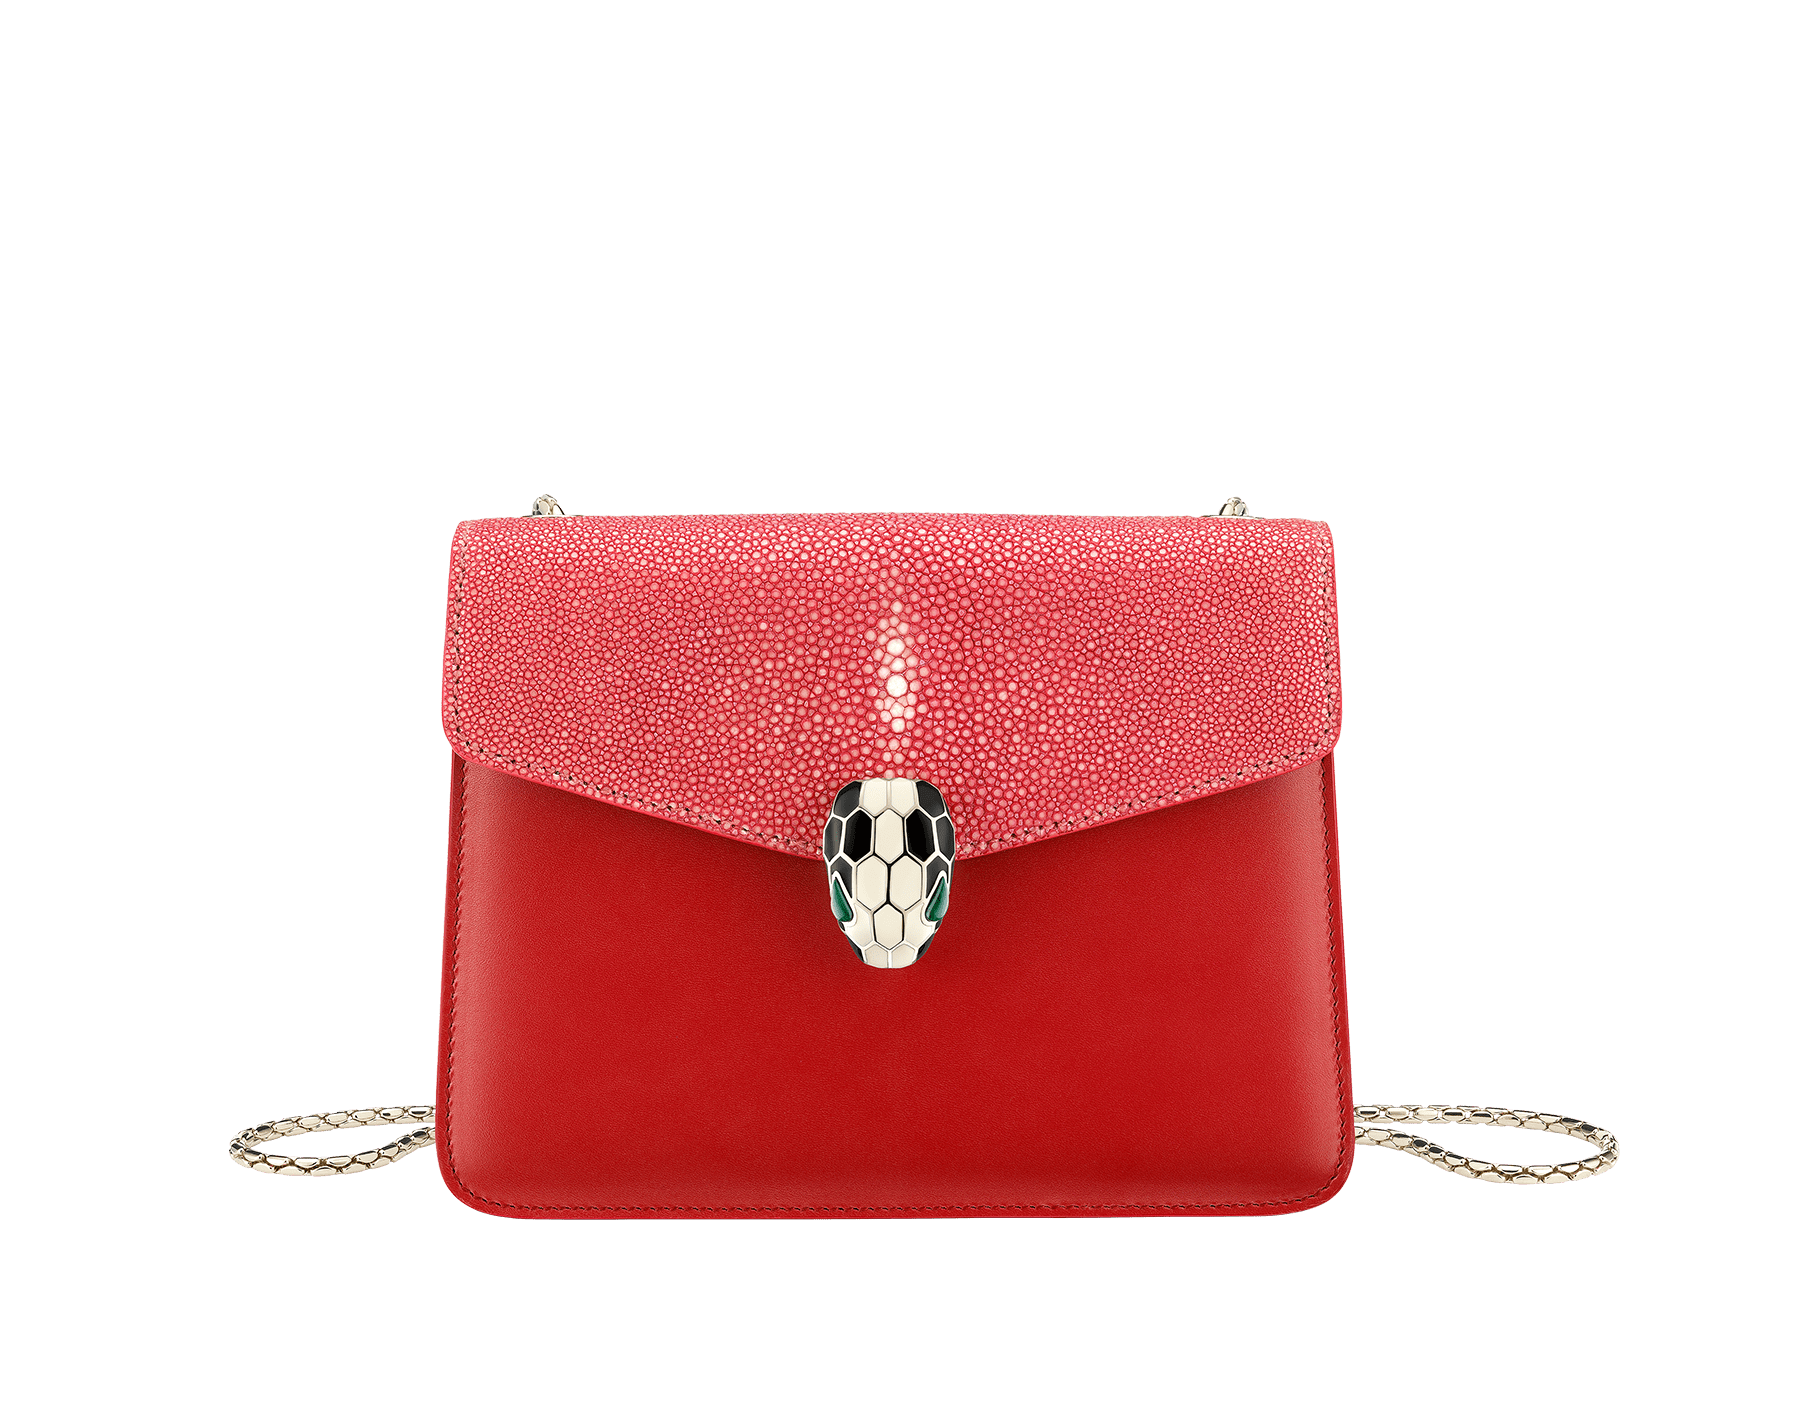 """Serpenti Forever "" crossbody bag in carmine jasper galuchat skin and calf leather. Iconic snakehead closure in light gold plated brass enriched with black and white enamel and green malachite eyes 287053 image 1"